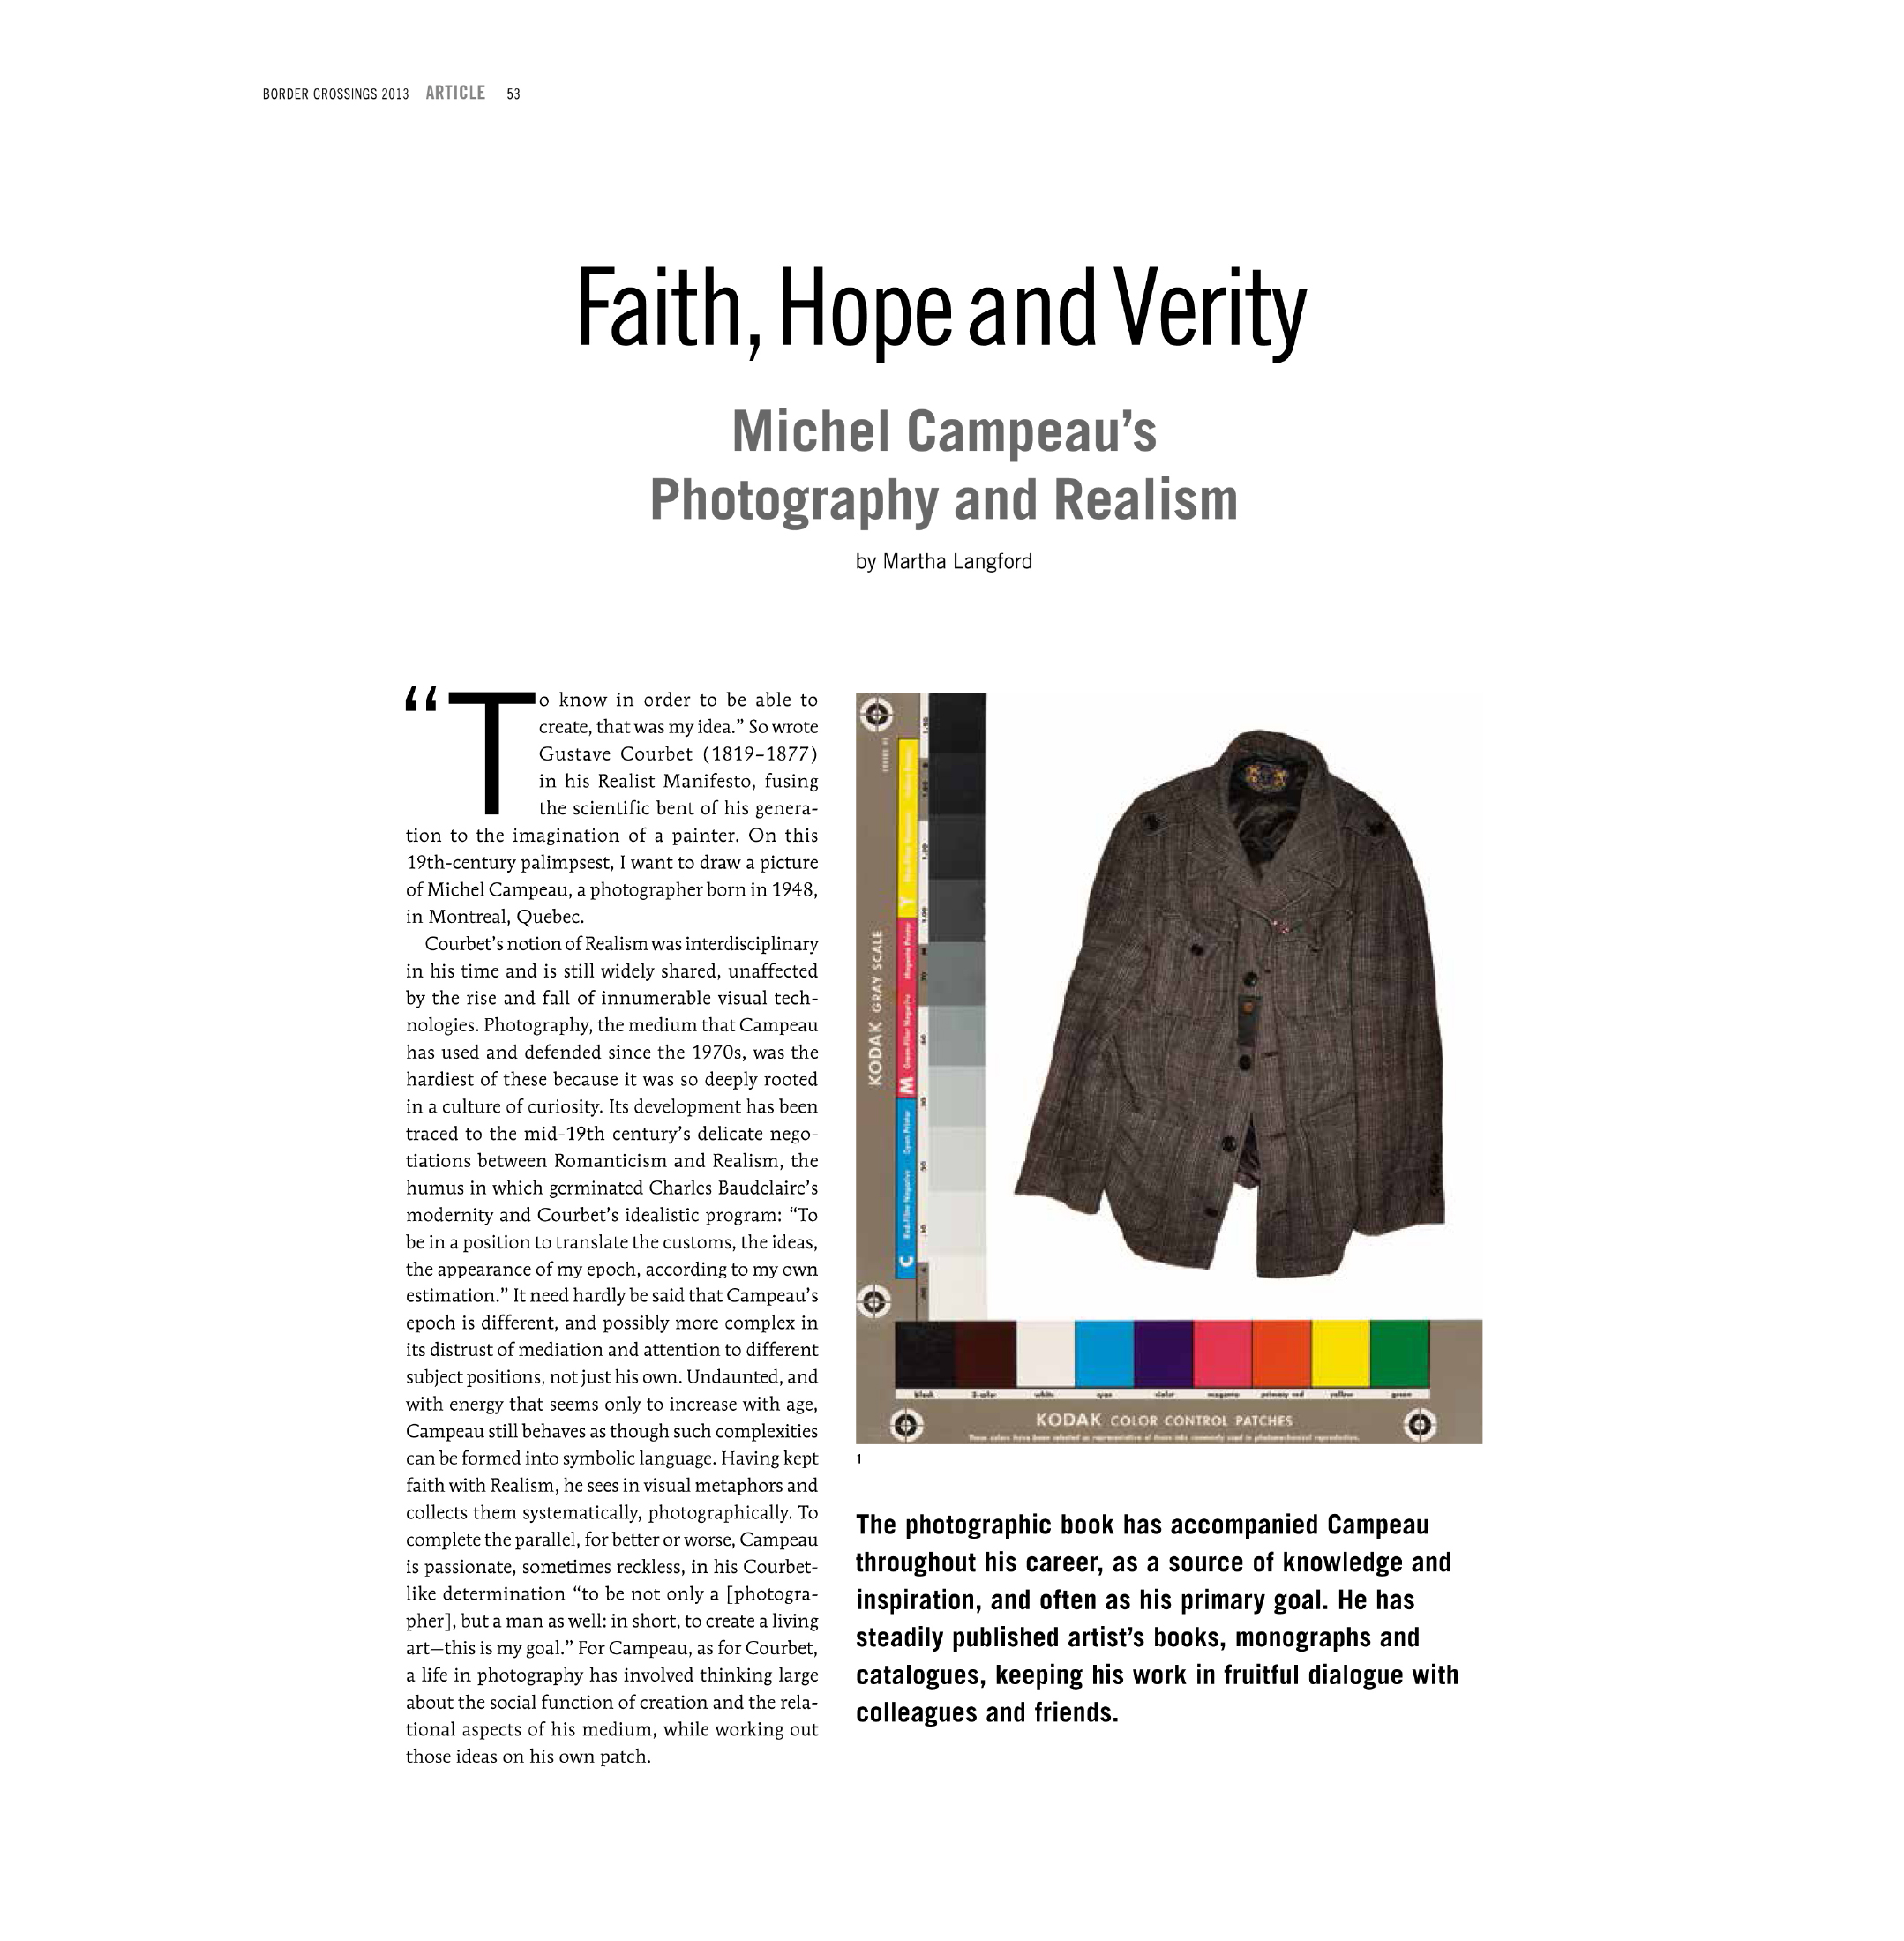 075_Faith, Hope and Verity_Michel Campeau's Photography an Realism_by Martha Langford_Border Crossings_ Fall 2013_p. 50-59-3-1.jpg